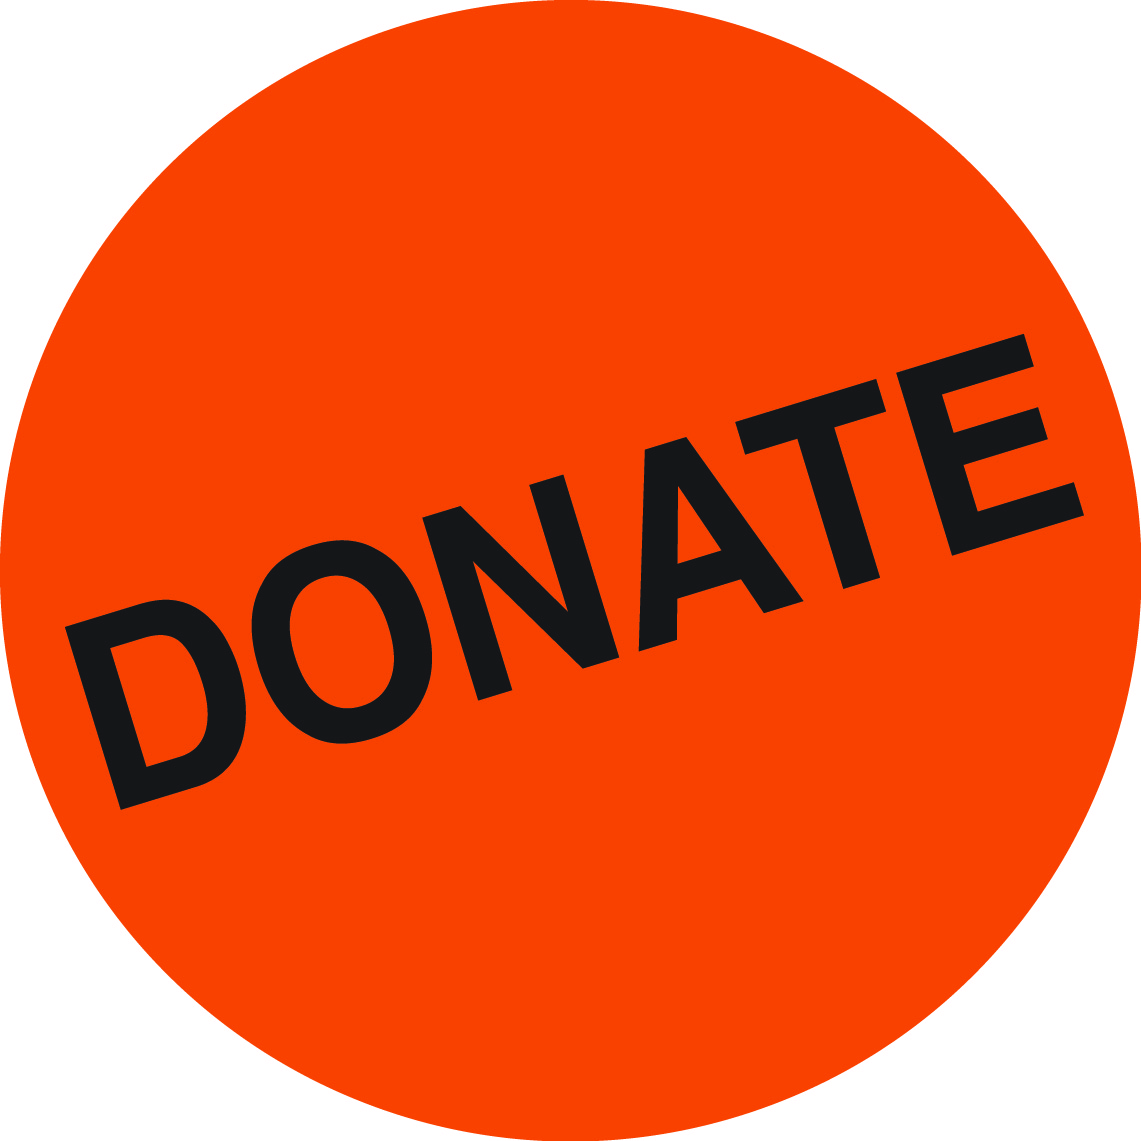 online donation promotion tool kit uw organ and tissue